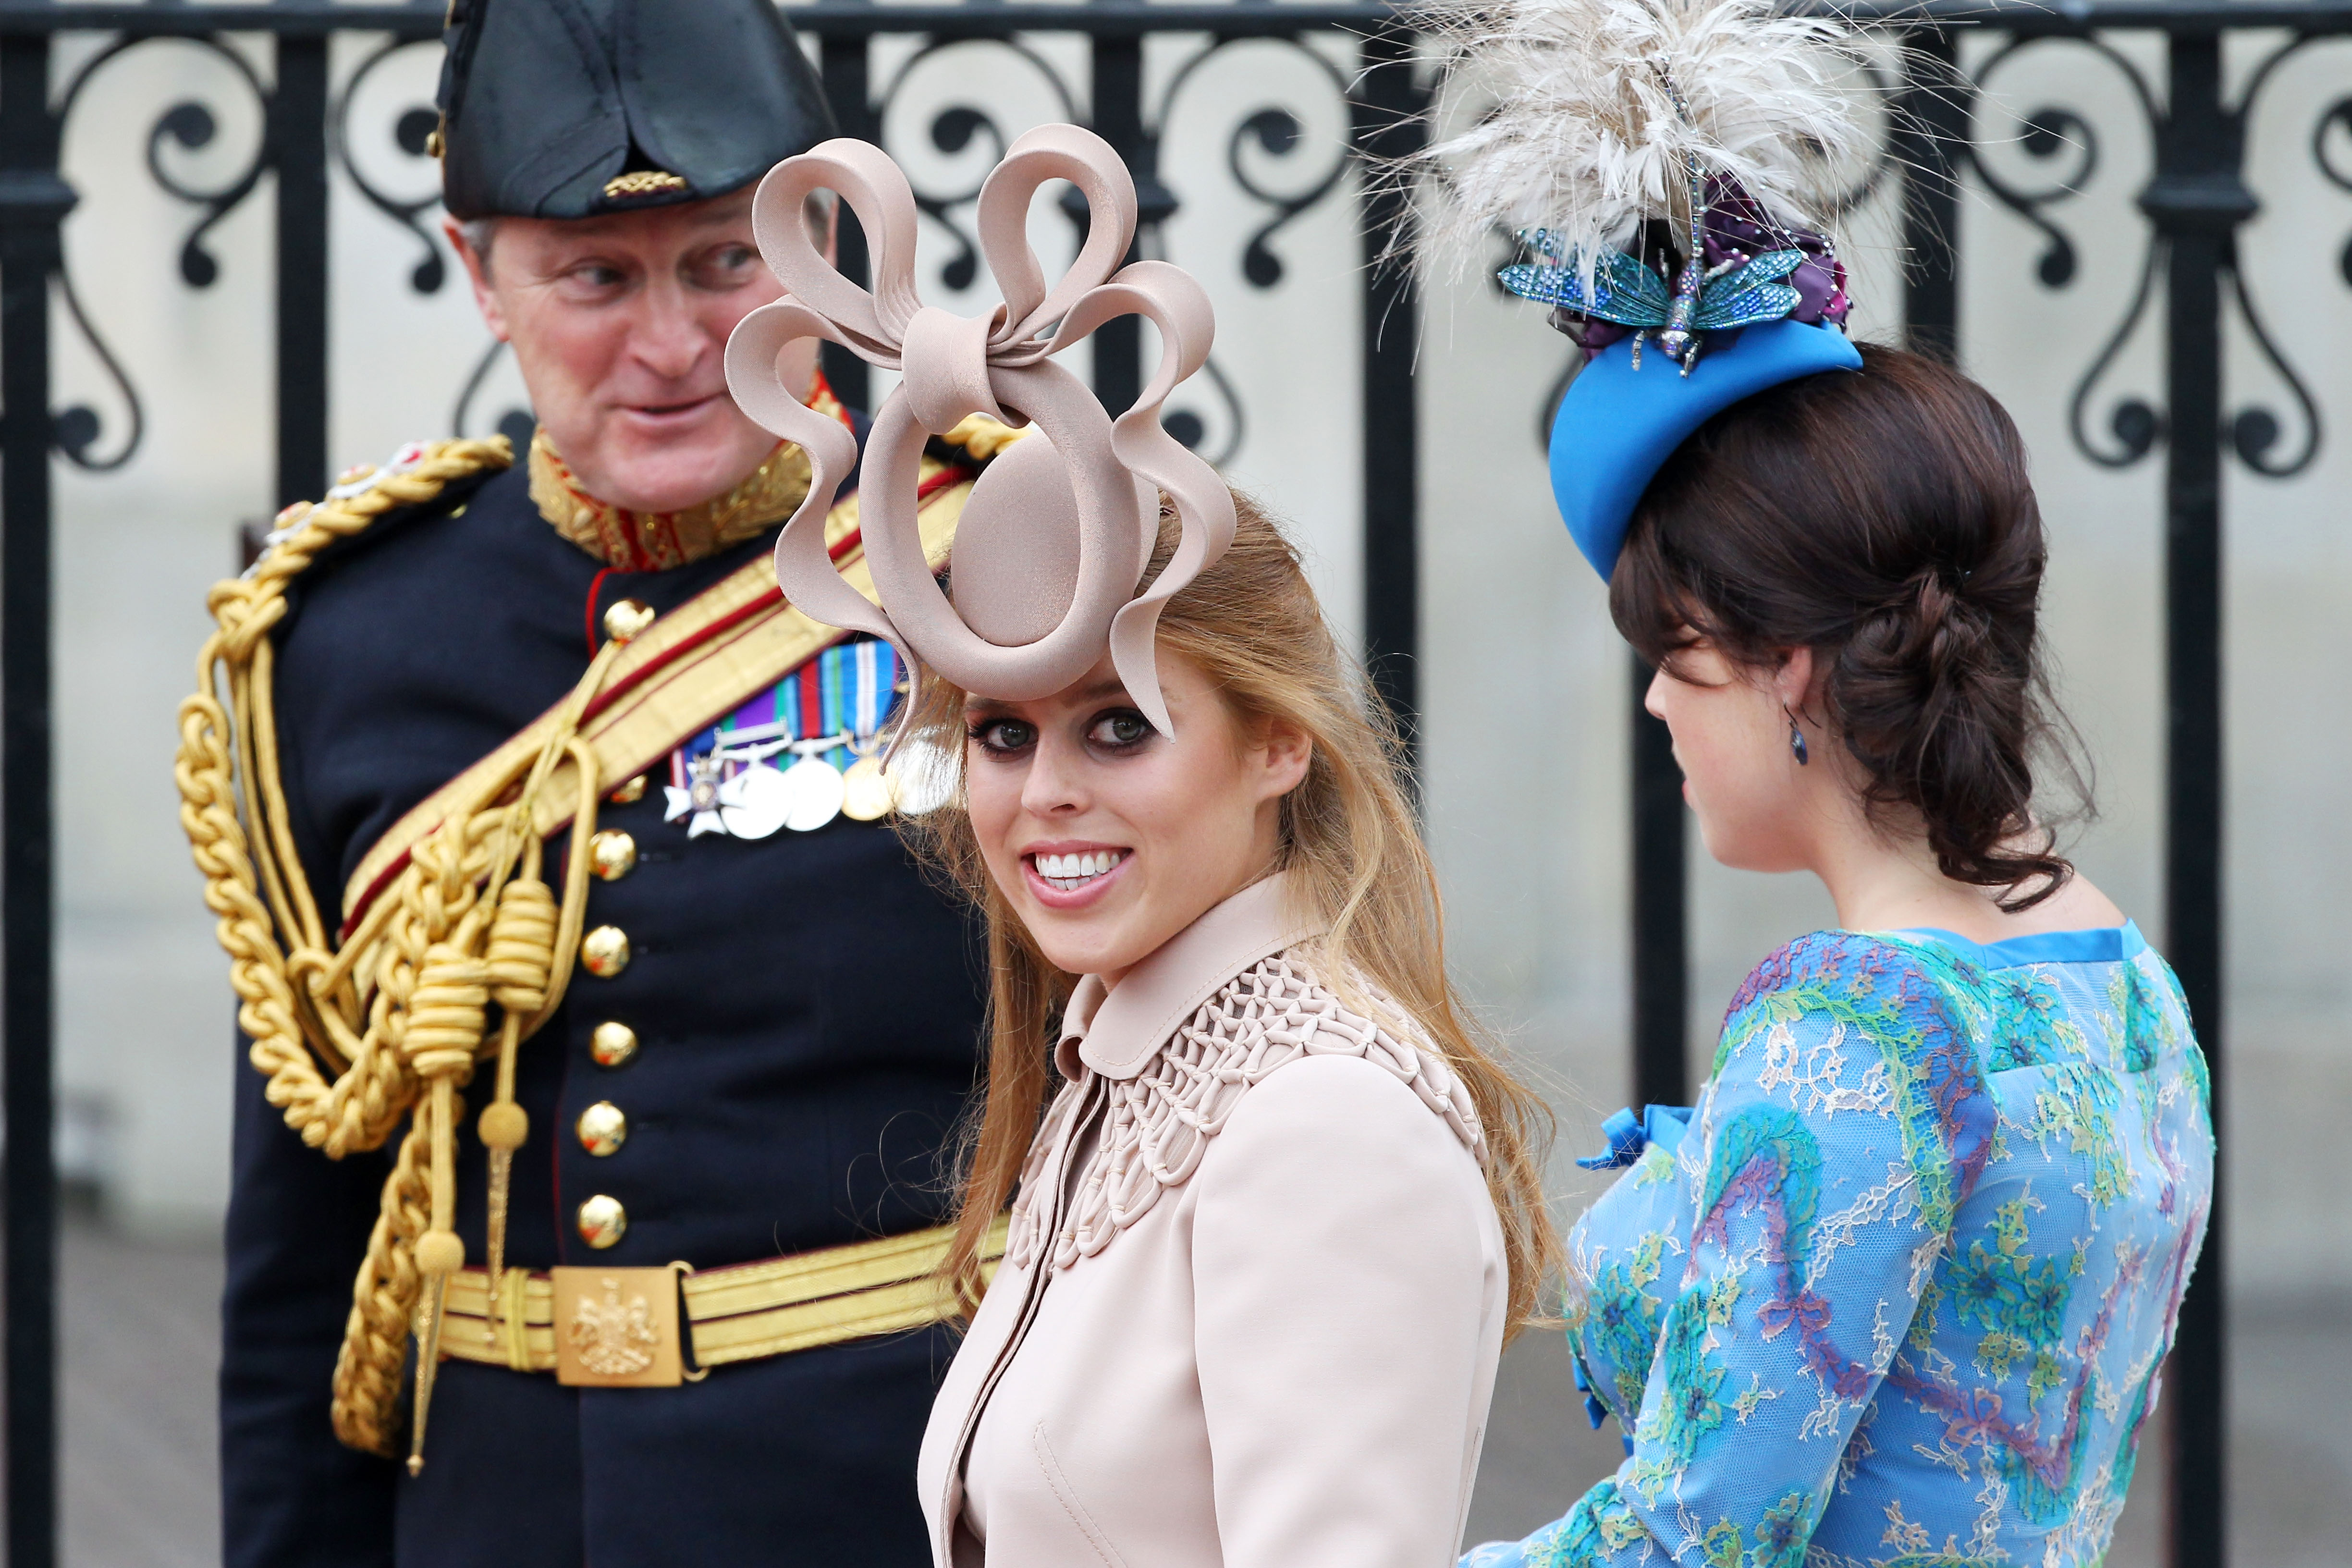 Princess Beatrice of York (L) with her sister Princess Eugenie of York arrive at the Royal Wedding of Prince William to Kate Middleton at Westminster Abbey on April 29, 2011 in London, England.